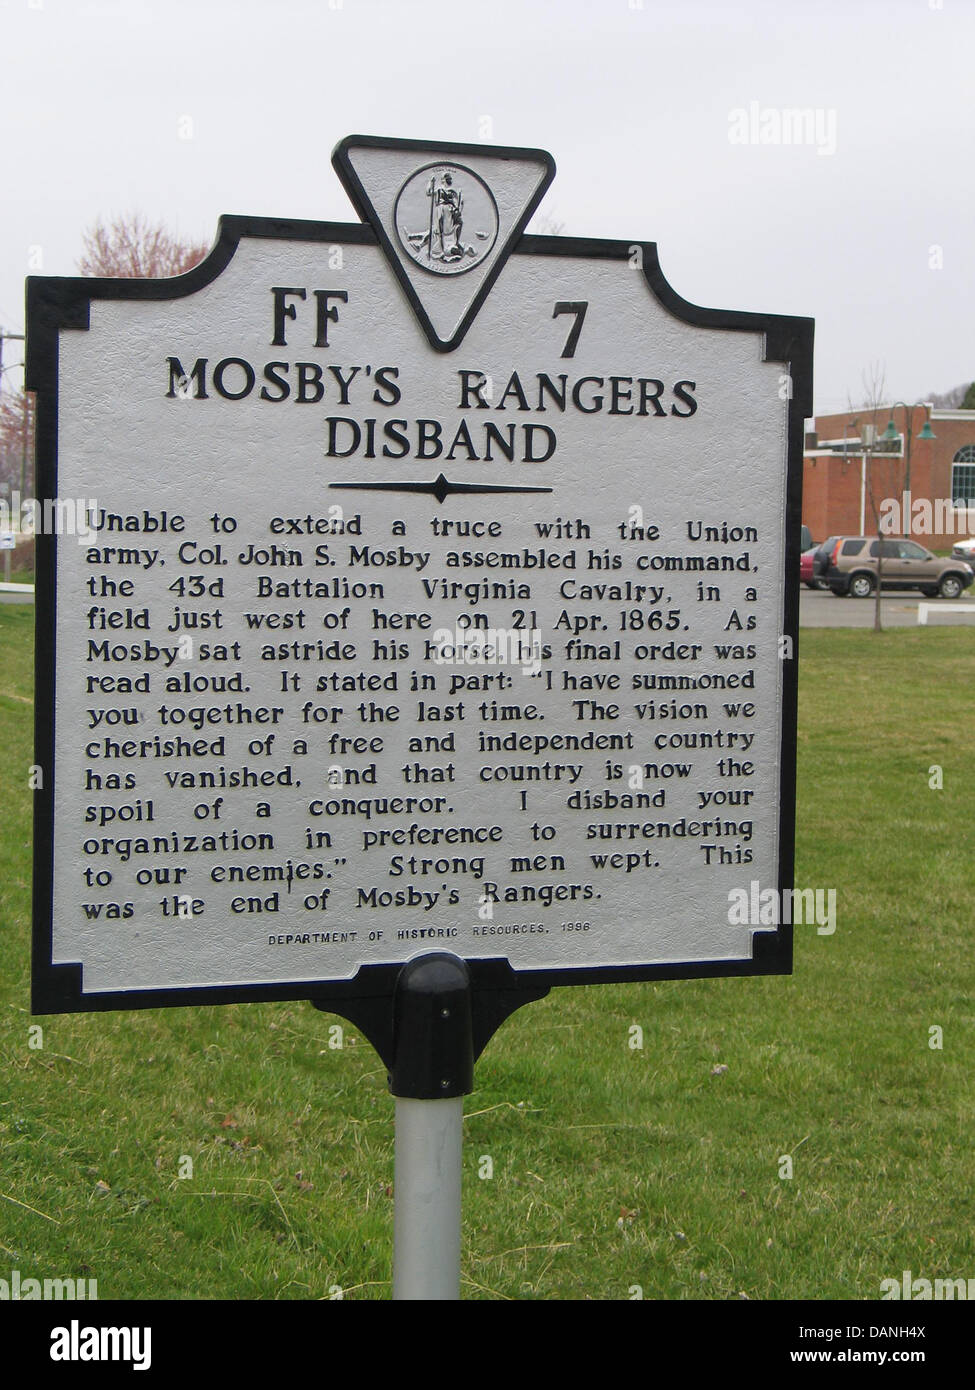 MOSBY'S RANGERS DISBAND  Unable to extend a truce with the Union army, Col. John S. Mosby assembled his command, - Stock Image